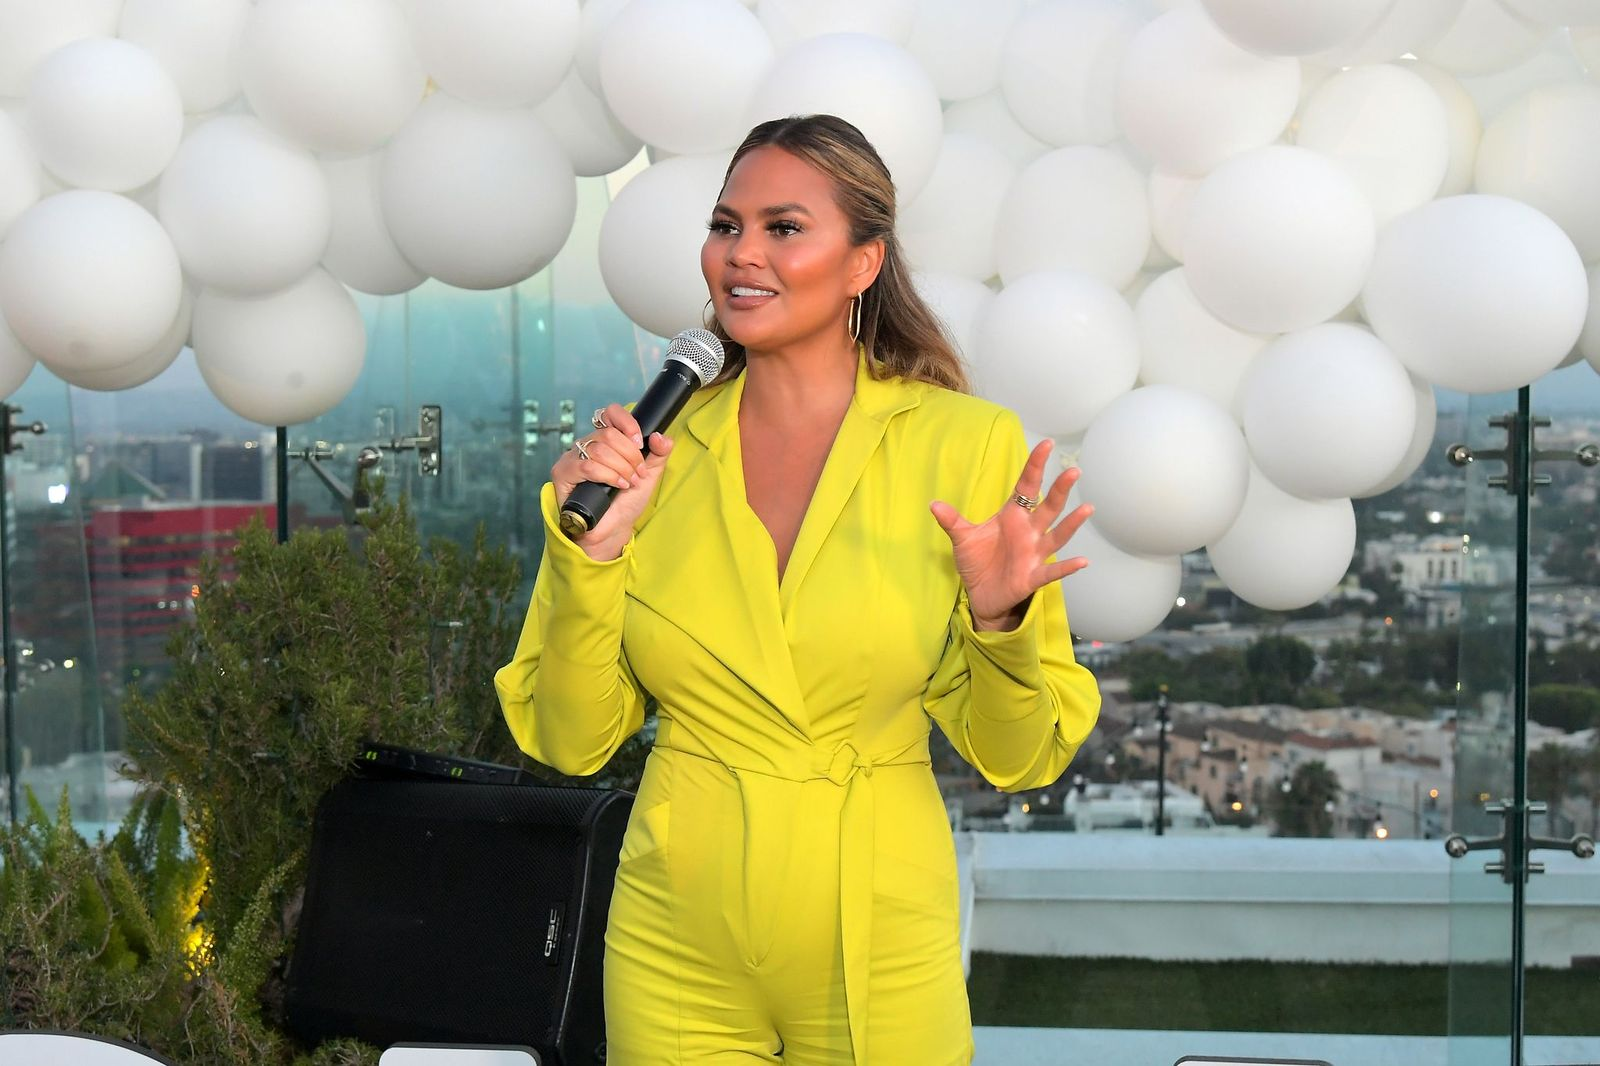 Chrissy Teigen speaks at the Quay x Chrissy Teigen launch event at The London West Hollywood on August 15, 2019 | Photo: Getty Images